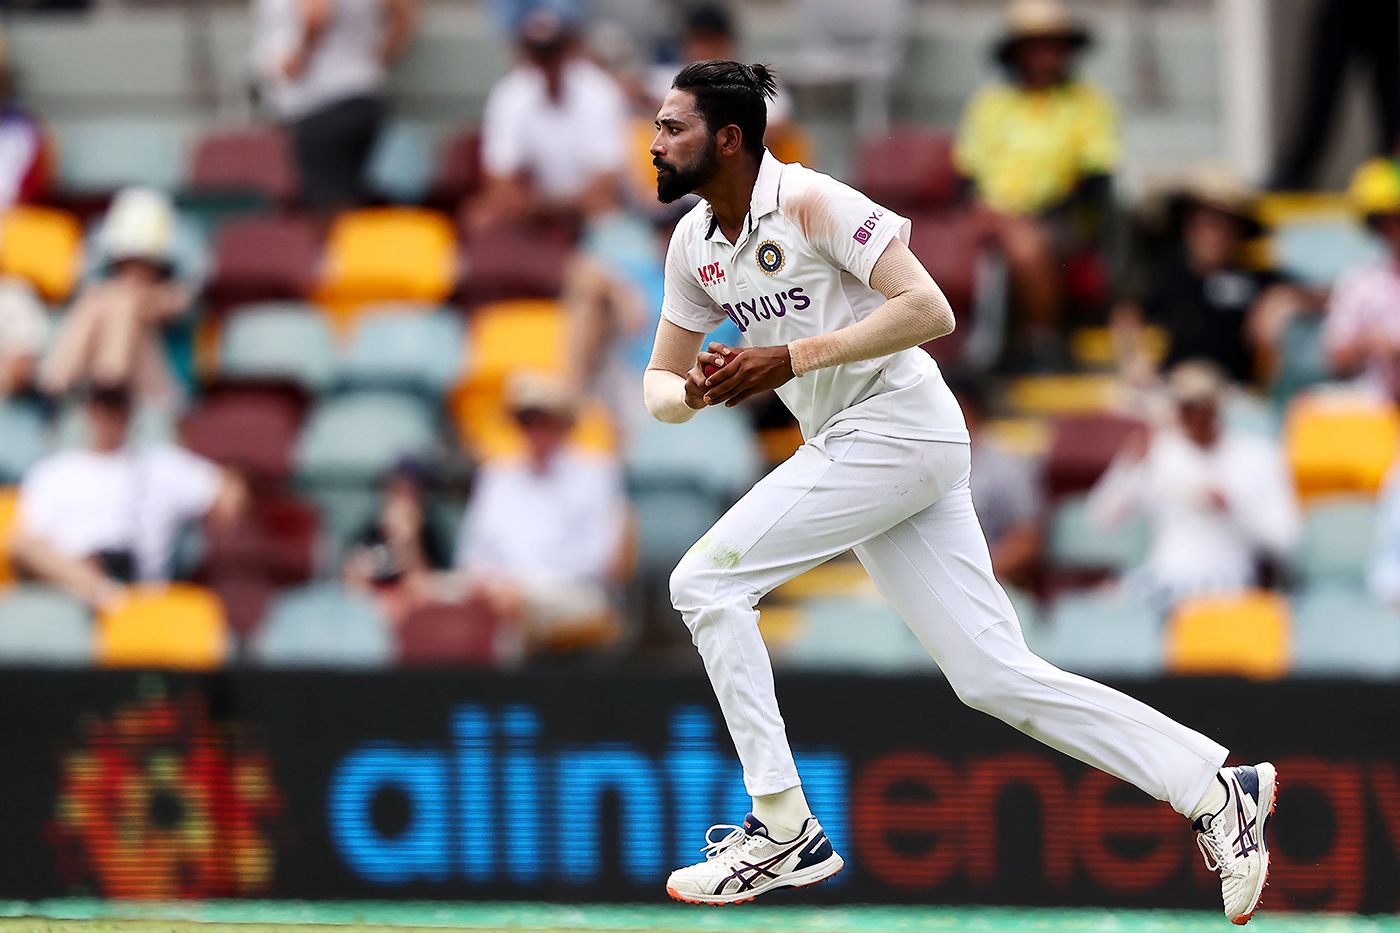 The real deal: Mohammed Siraj was surprisingly close to the finished article in his first Test series, against Australia a few months ago